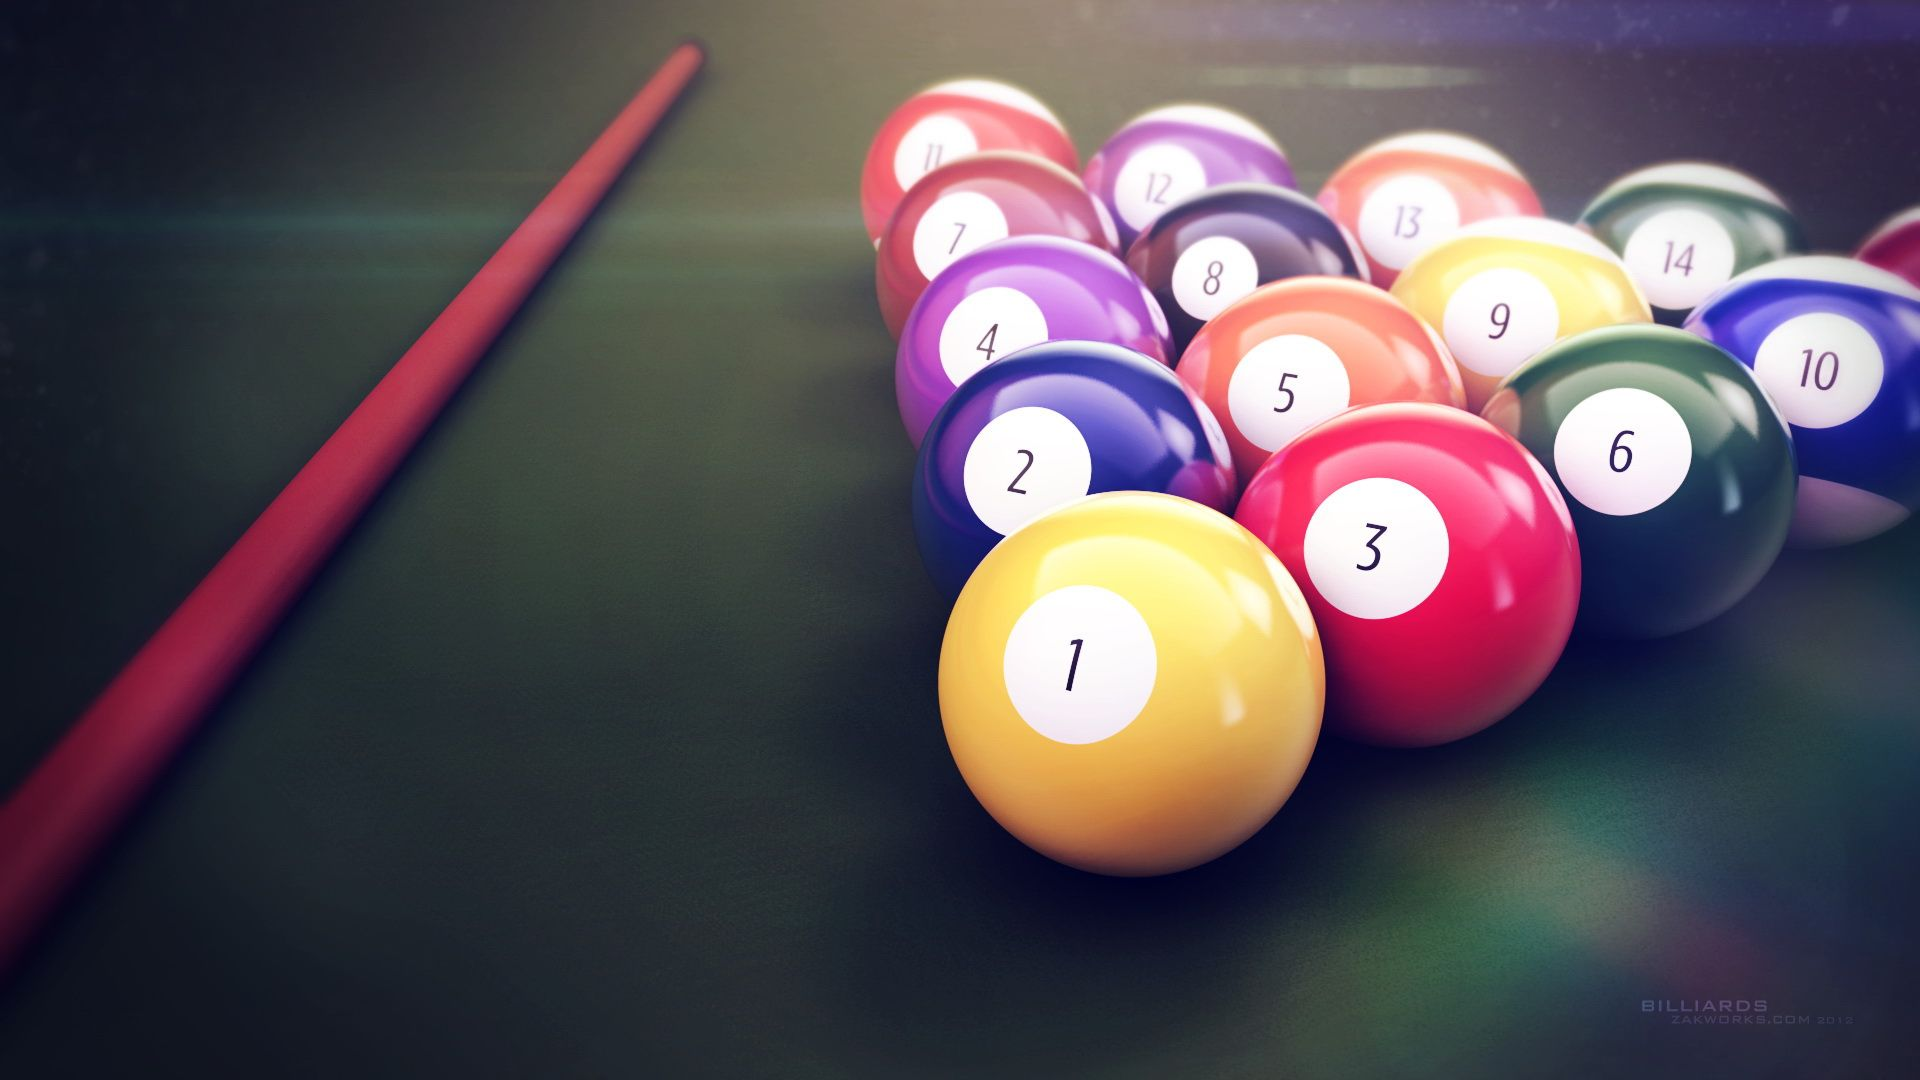 Billiards HD Live HD Wallpapers Pinterest Wallpaper 1920x1080